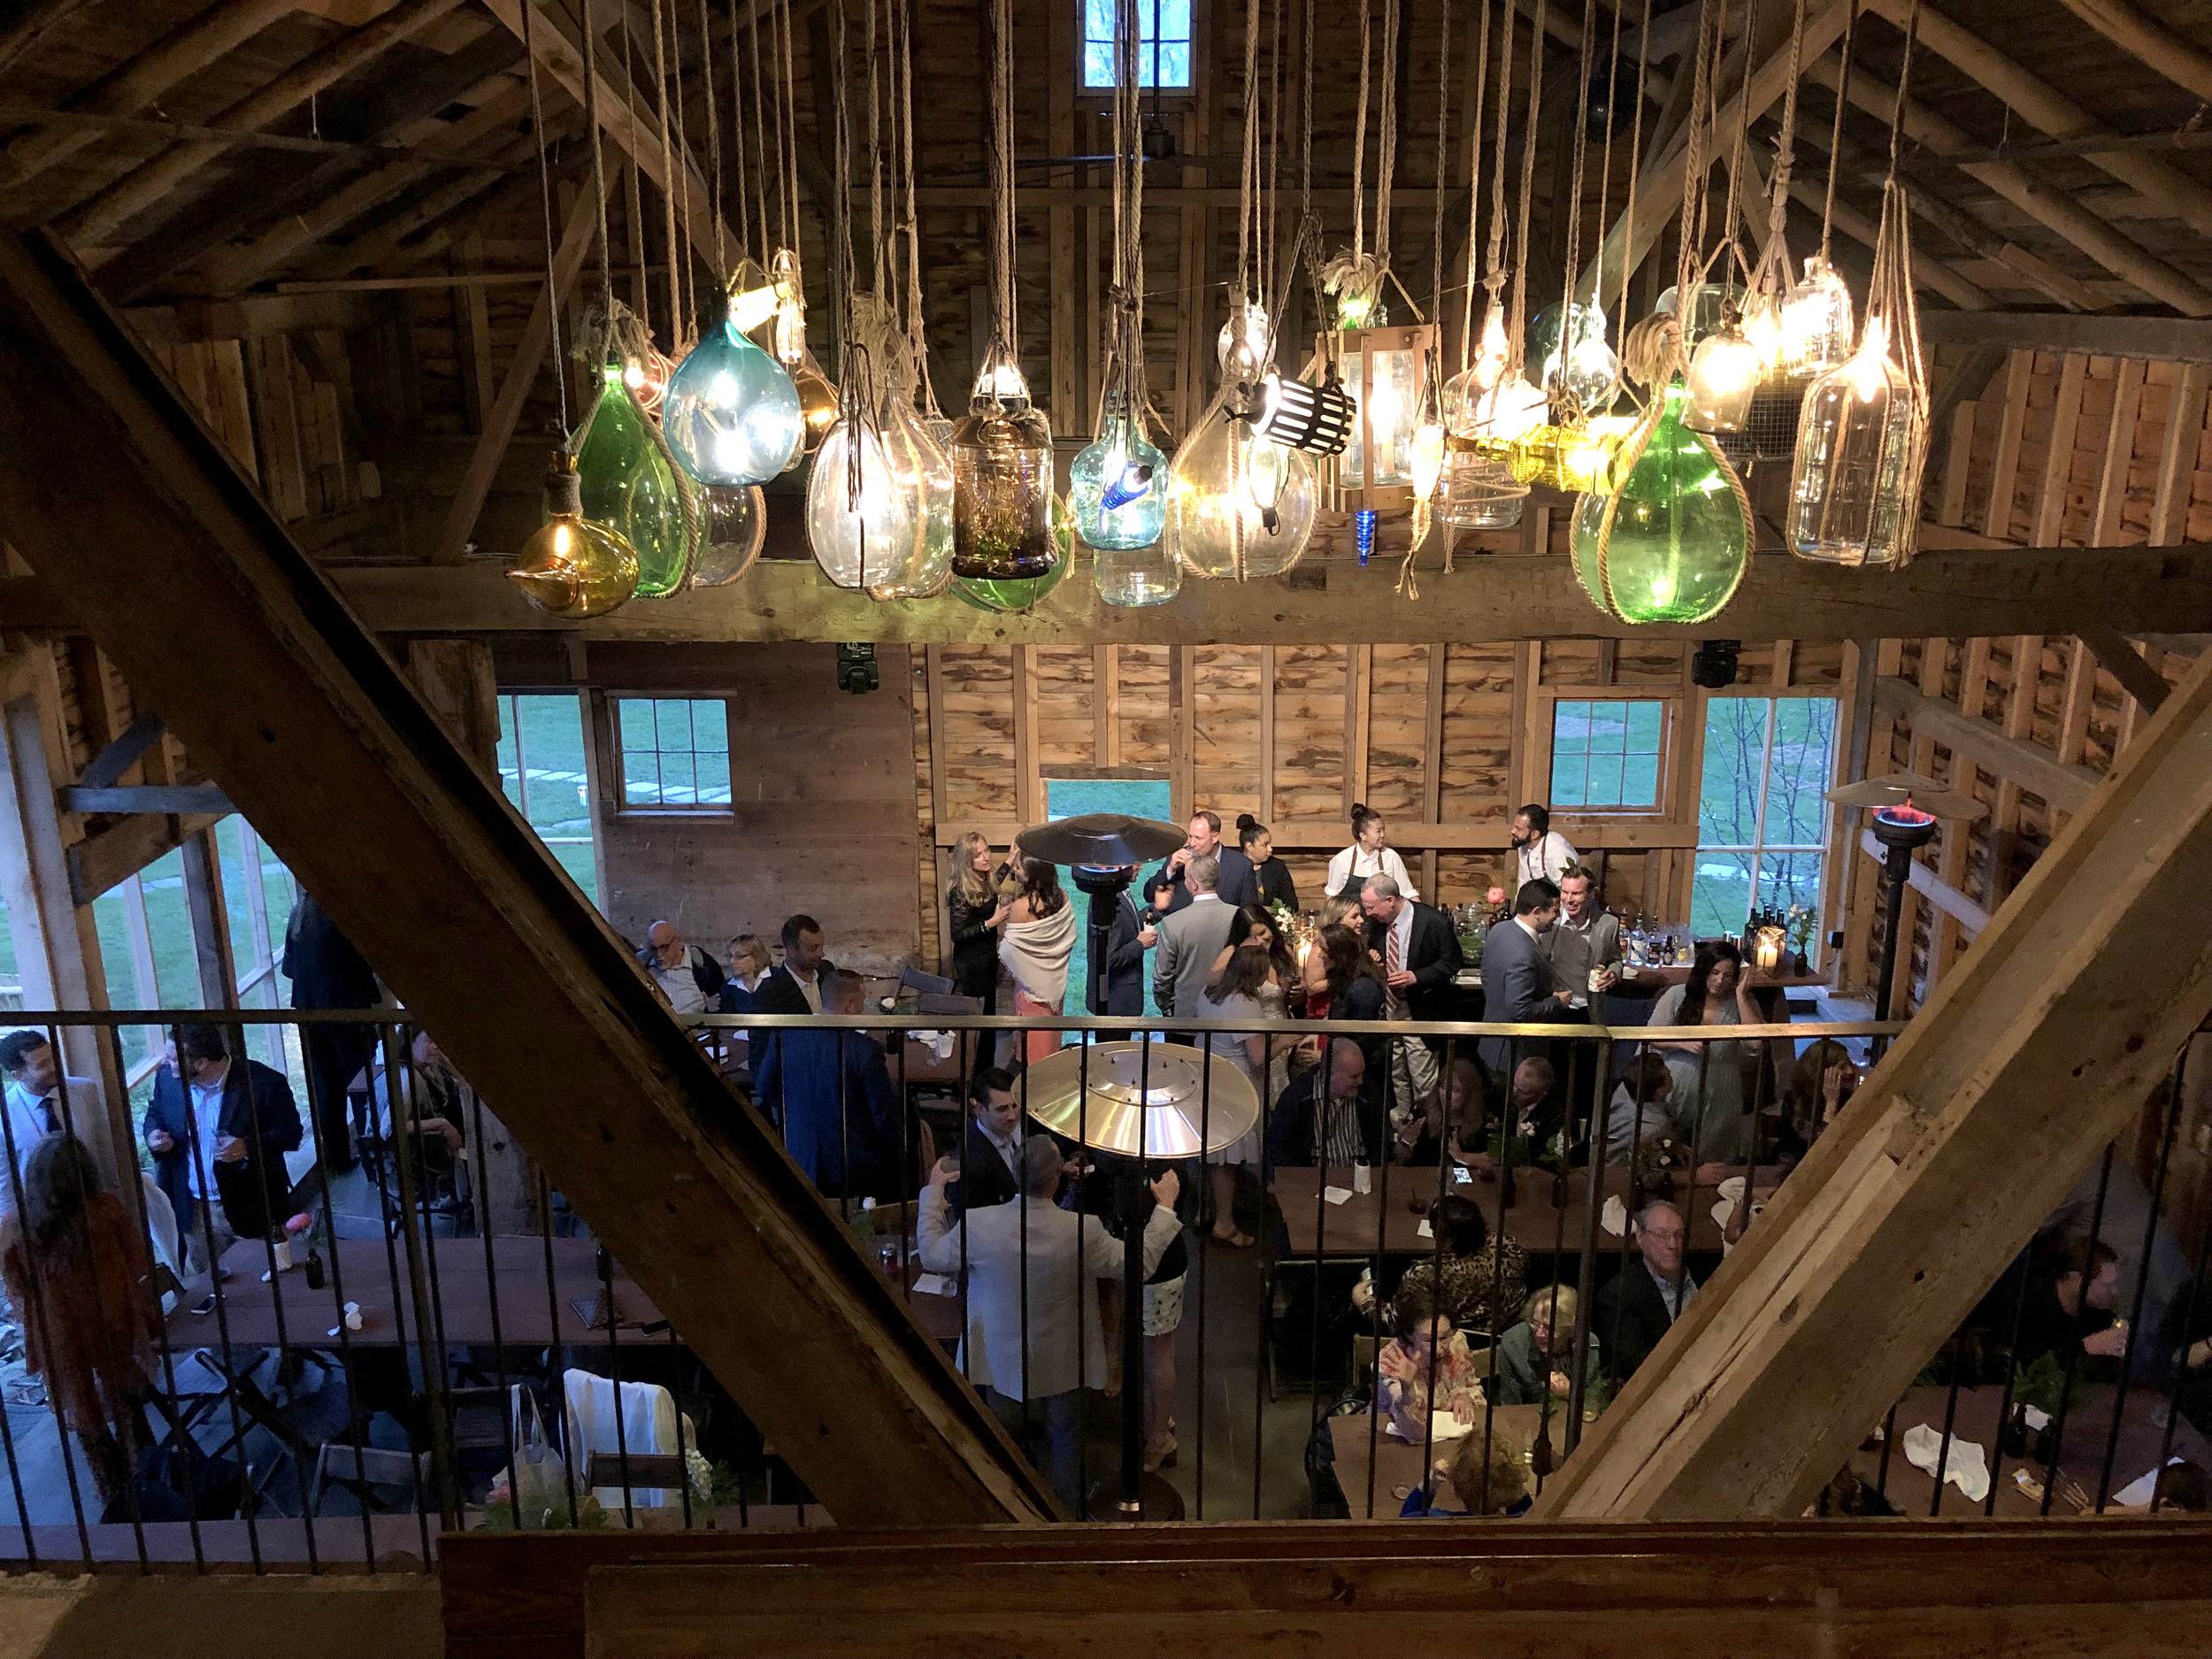 Rehearsal Dinner space called the Brewery Barn available on Friday before the wedding.